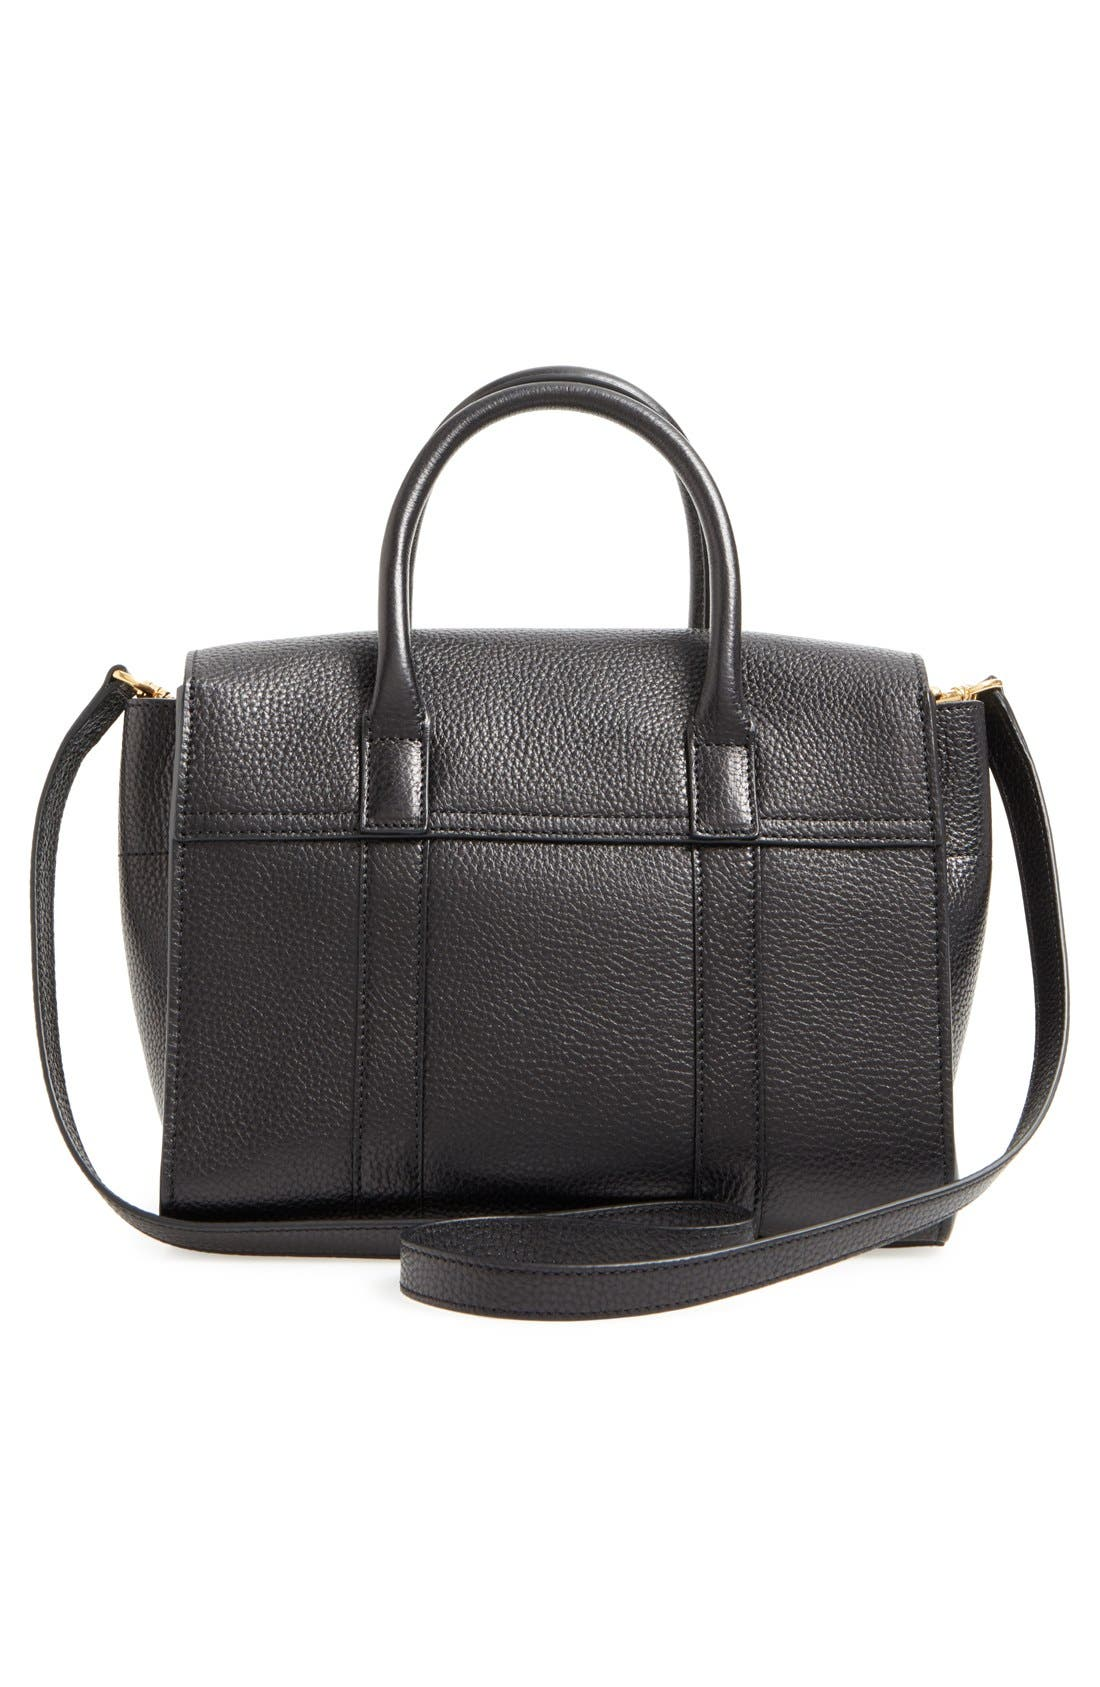 Alternate Image 3  - Mulberry 'Small Bayswater' Leather Satchel